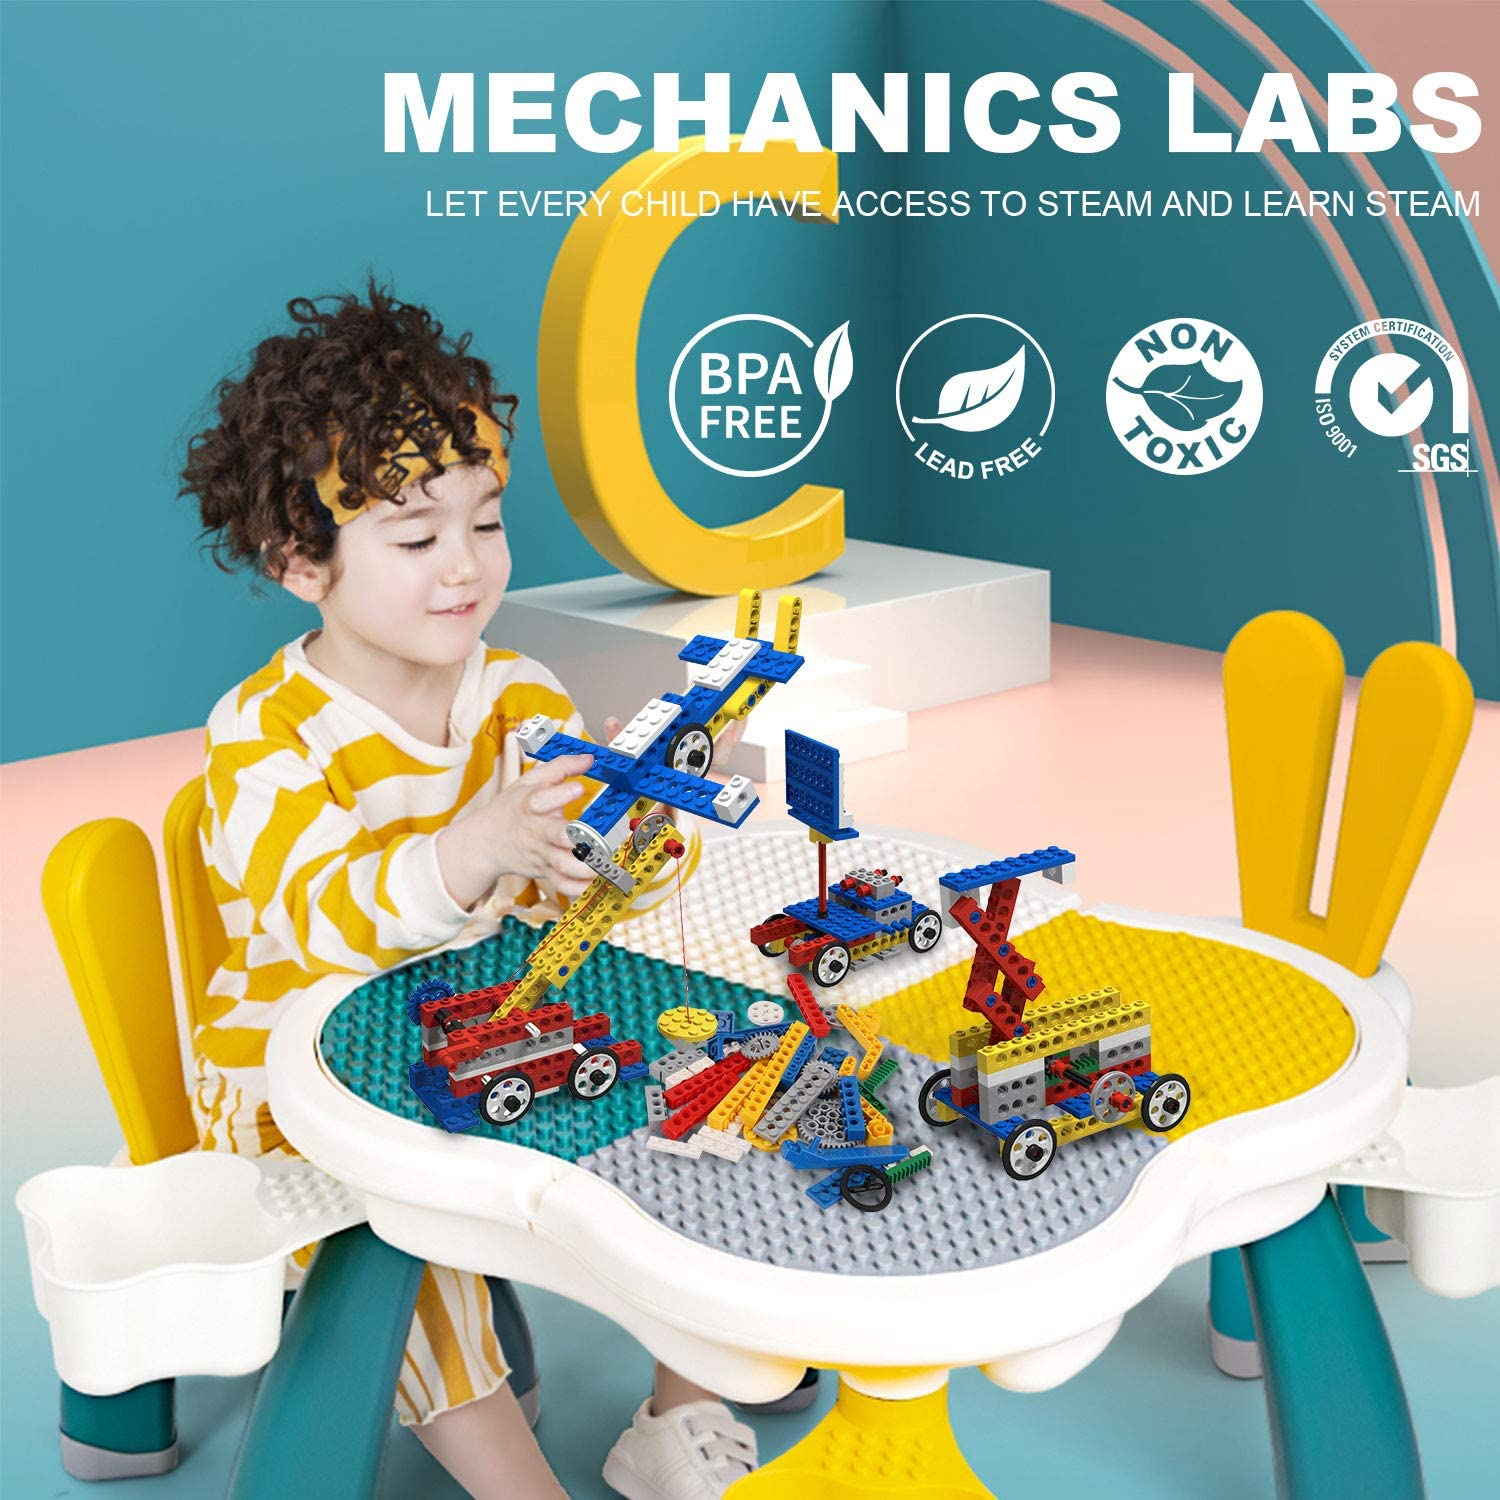 Age 6+ Sirarda STEM Building Blocks 135 Pieces Building Bricks with Gears Axles Pulleys Cranks People Figures Educational Toys with Brick Book Compatible with All Major Brands in 7 Vibrant Colors